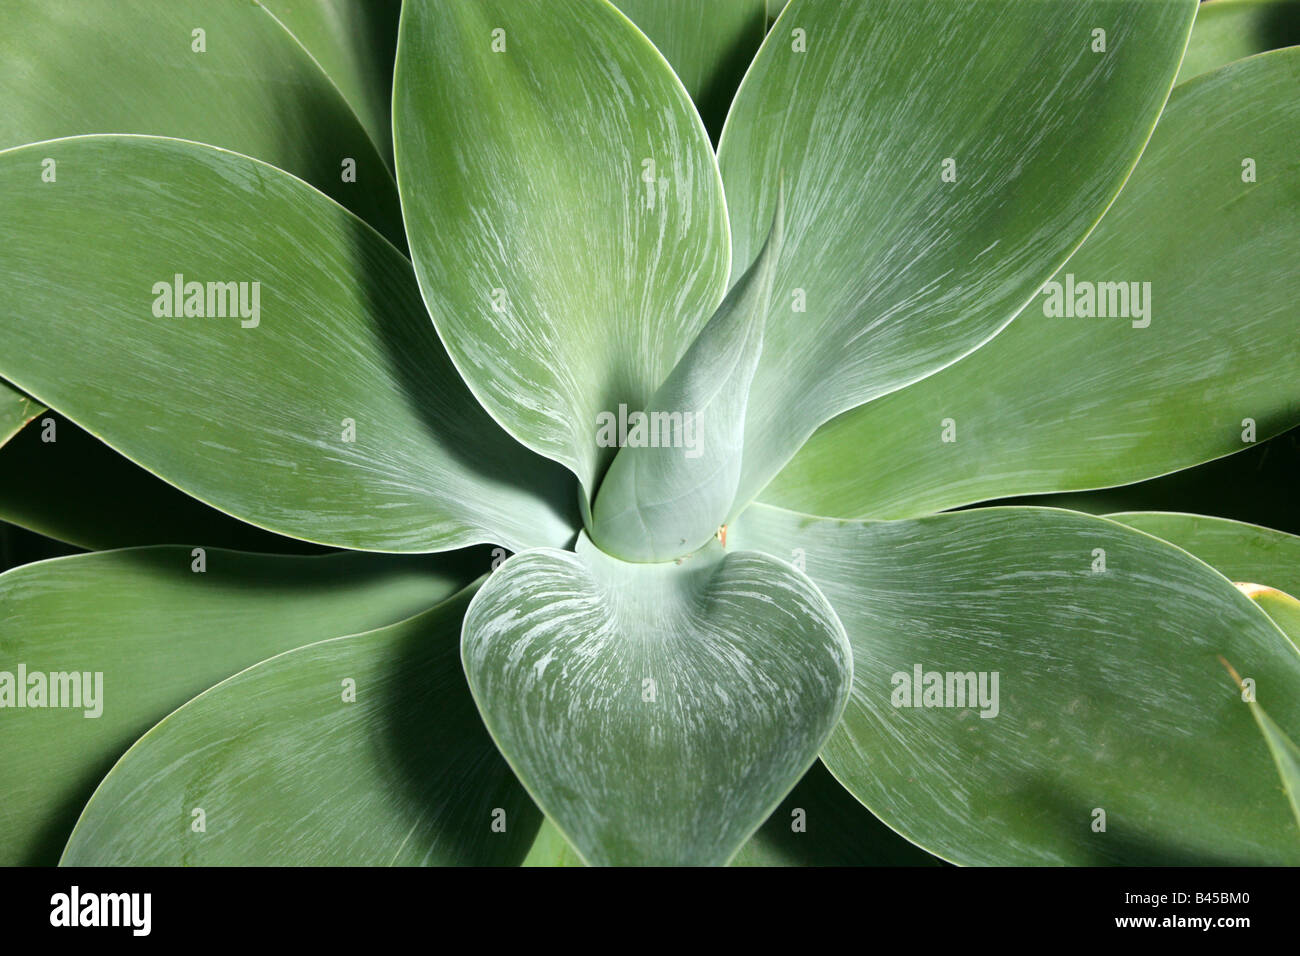 Lion's Tail aka Swan's Neck or Foxtail, Agave attenuata, Agavaceae, Mexico - Stock Image